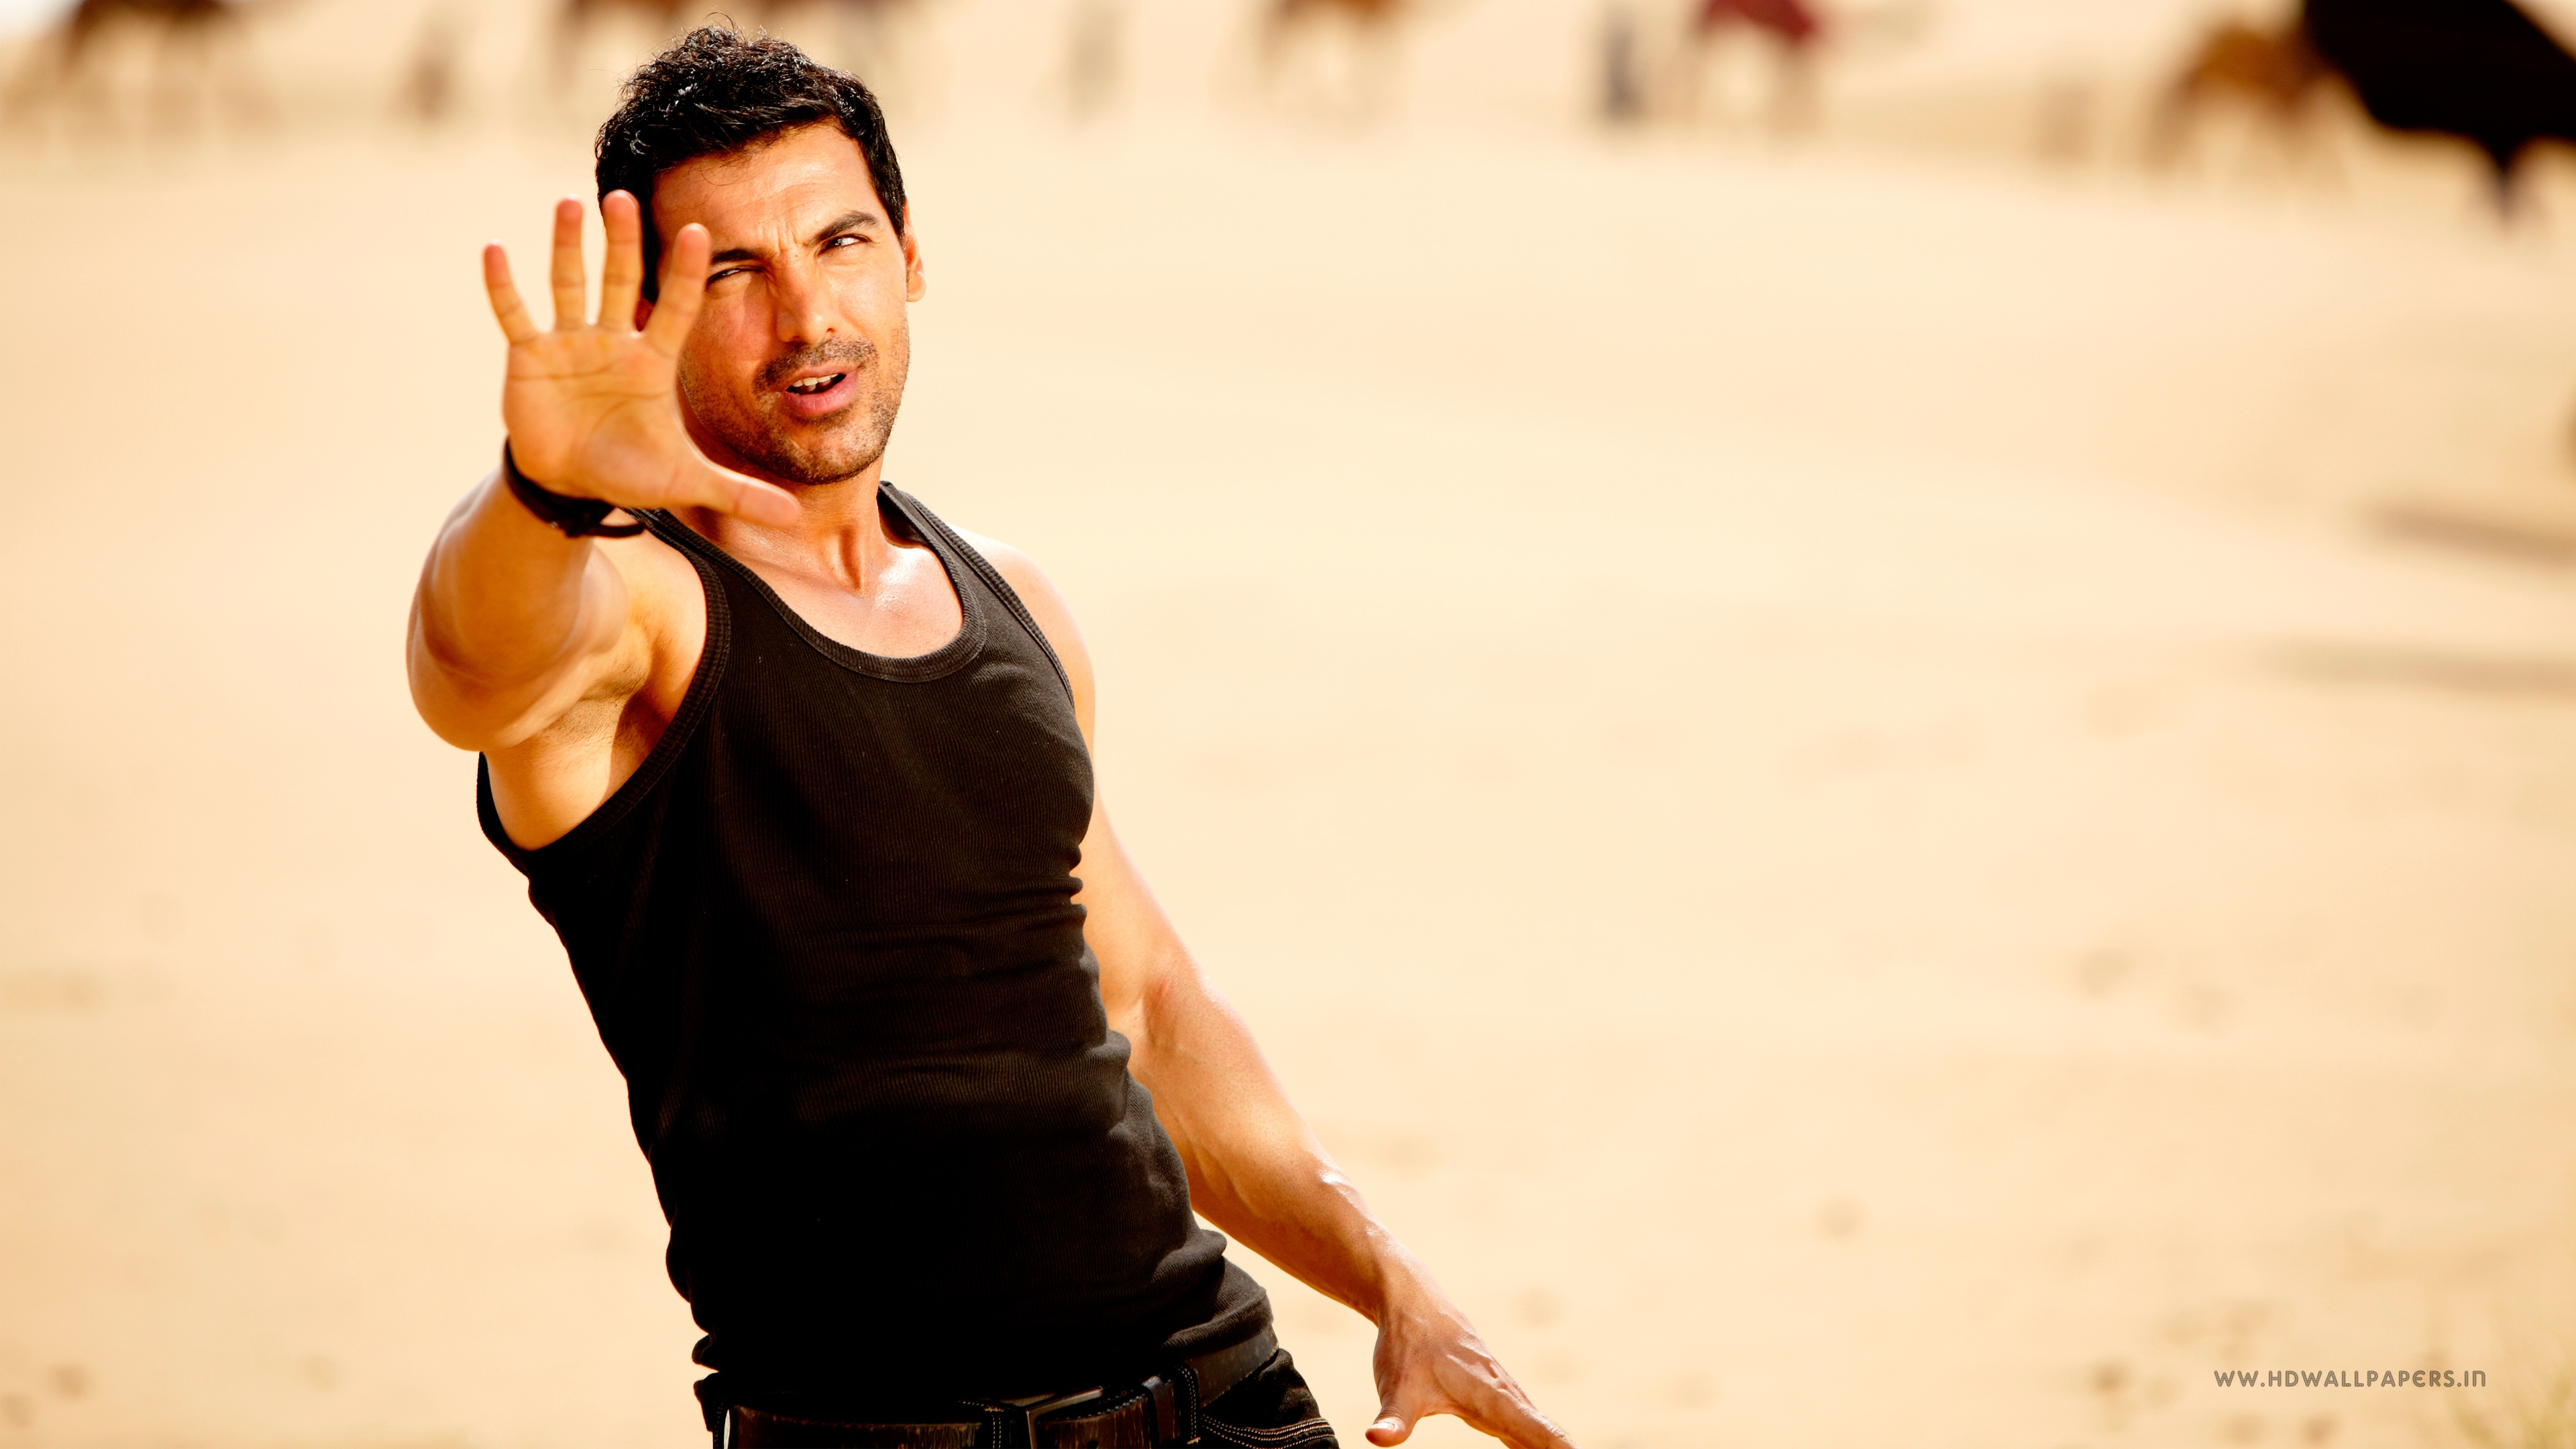 John Abraham Indian Actor Wallpapers In Jpg Format For Free Download